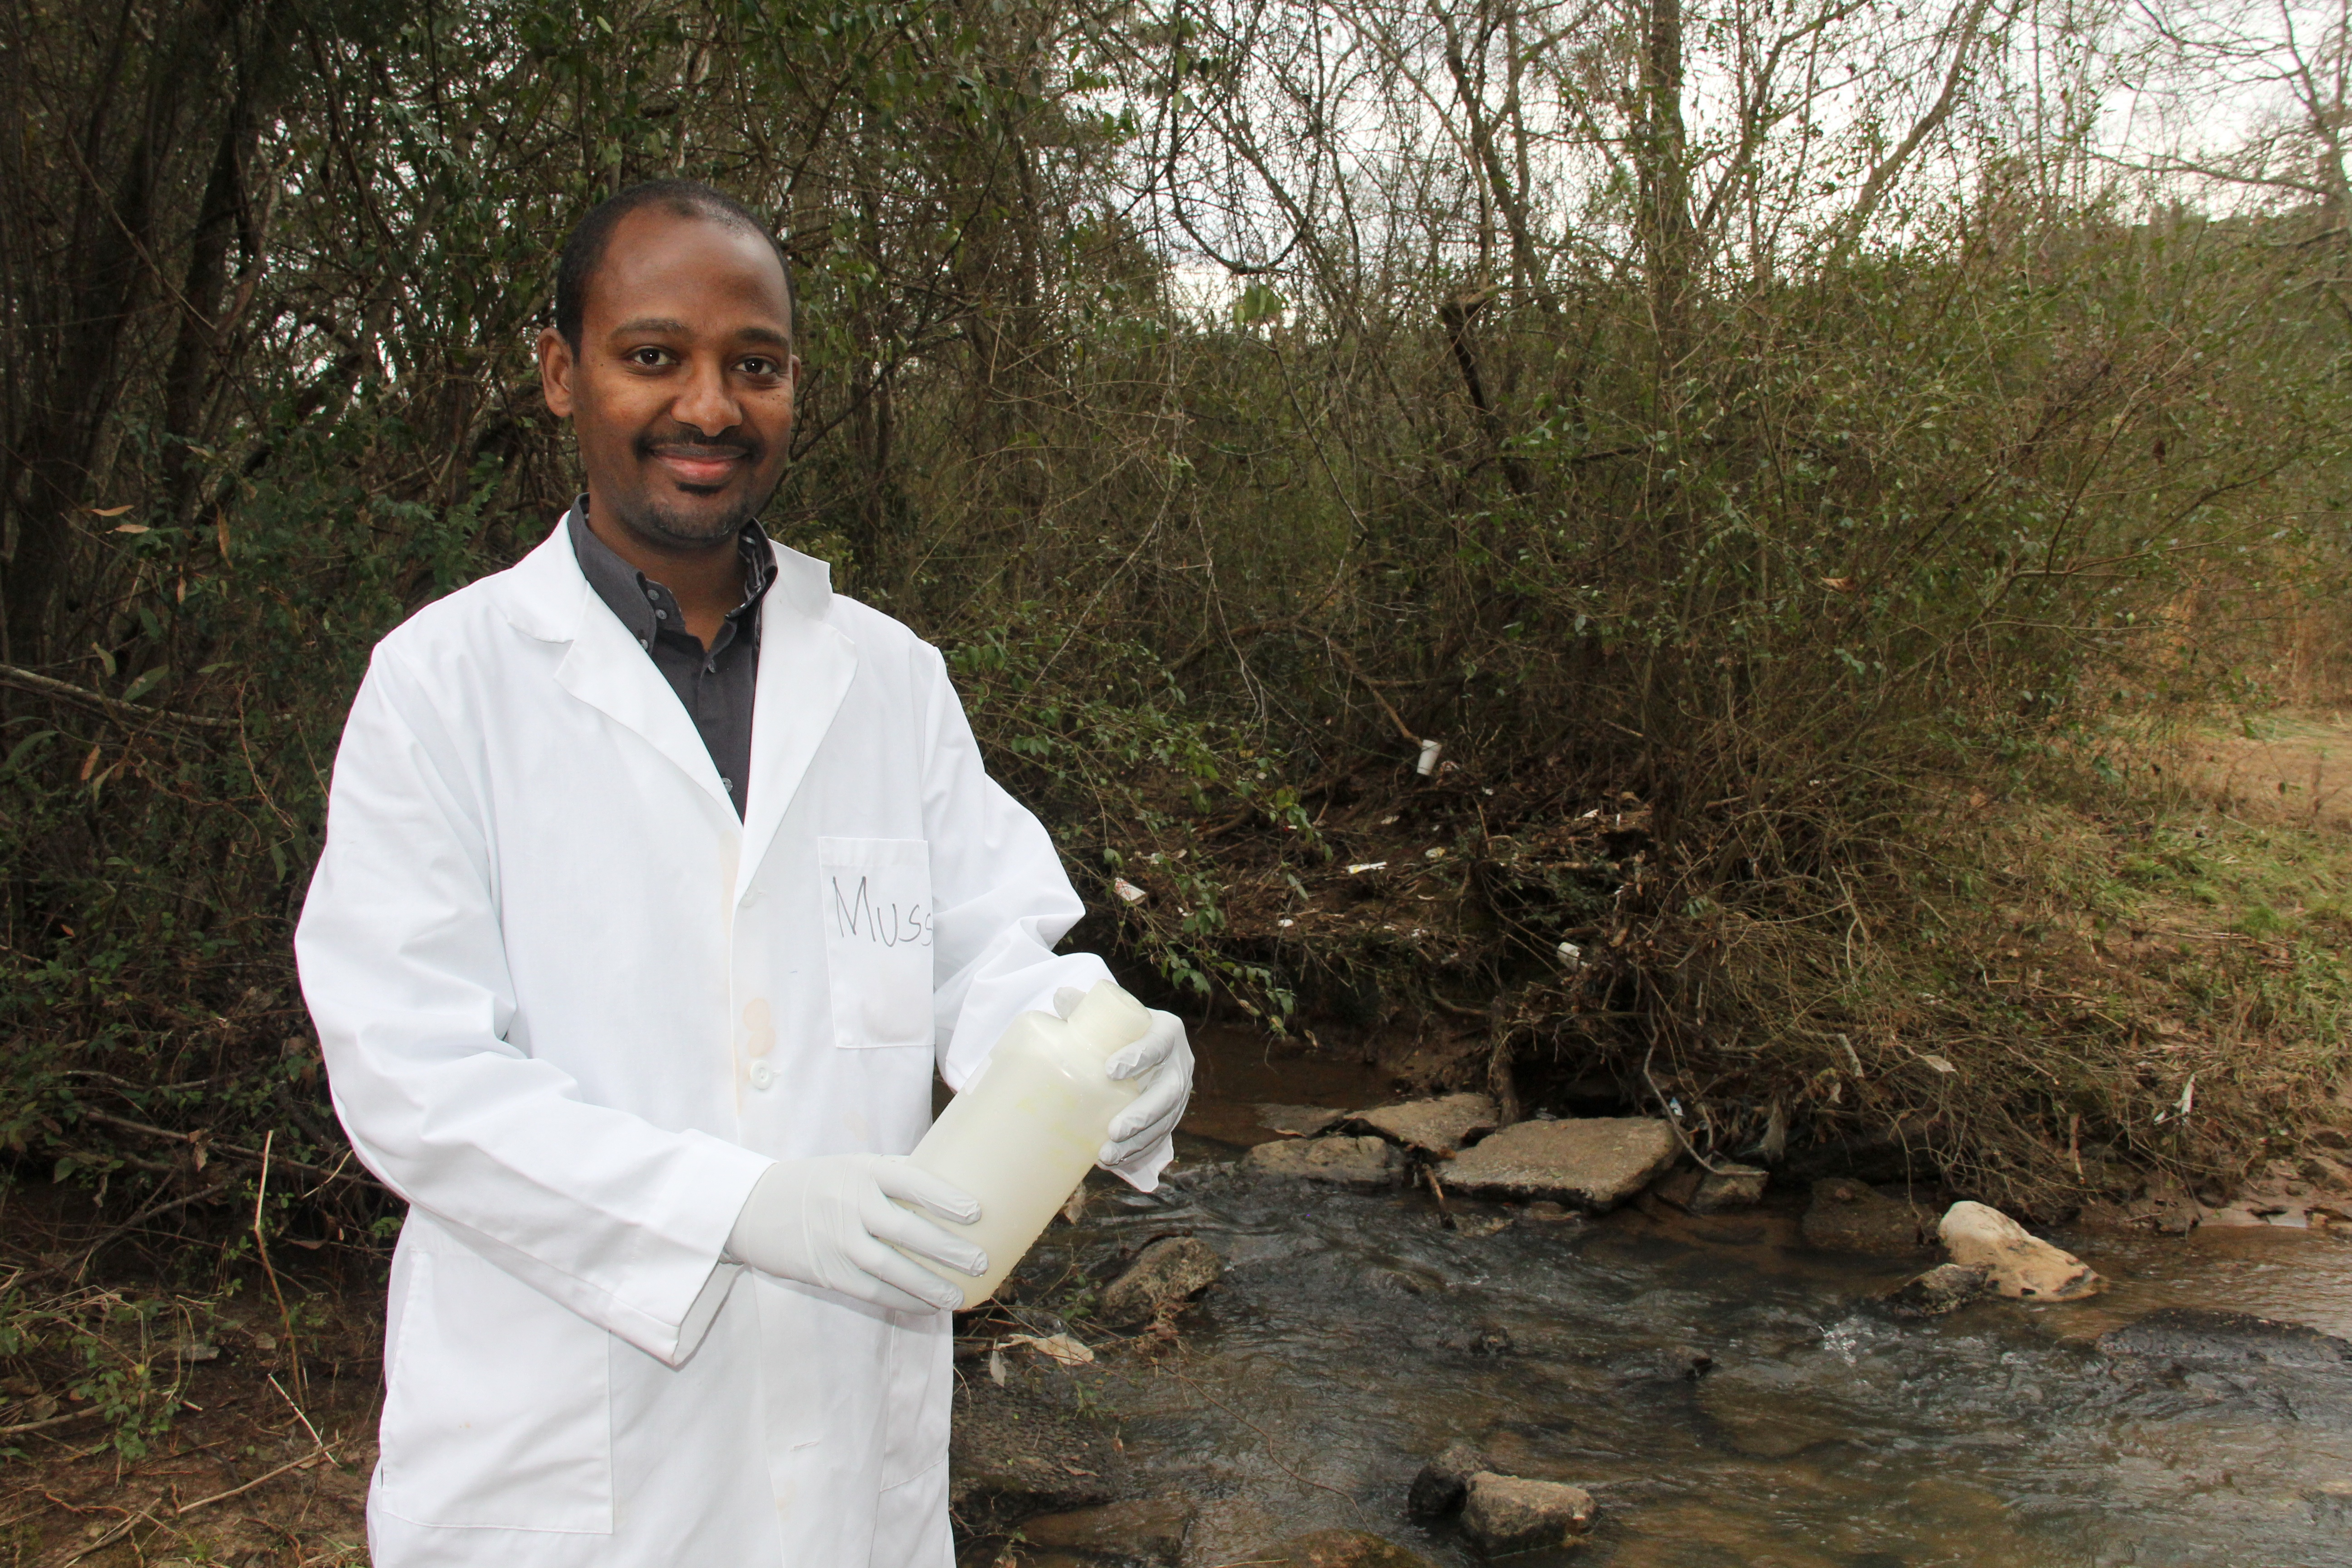 University of Georgia scientist Mussie Habteselassie is studying the affect of septic systems on water quality and quantity in the Metro Atlanta area.